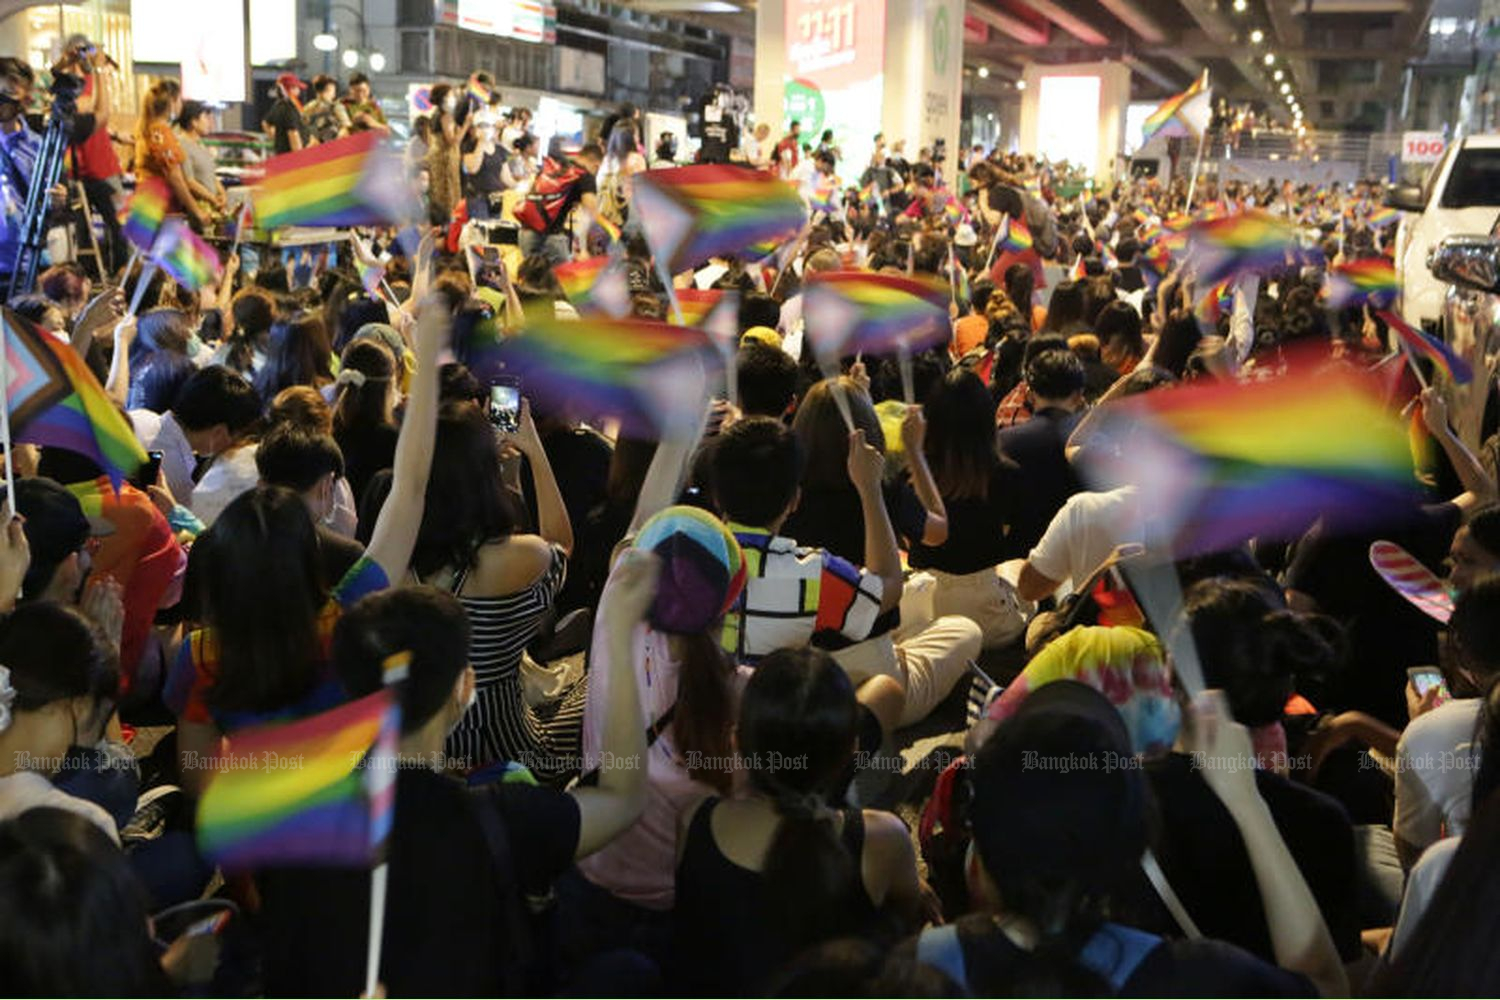 Hundreds of people gather on Silom Road in Bangkok on a march for democracy and equal rights for LGBT+ people on Saturday evening. (Photos by Apichit Jinakul)